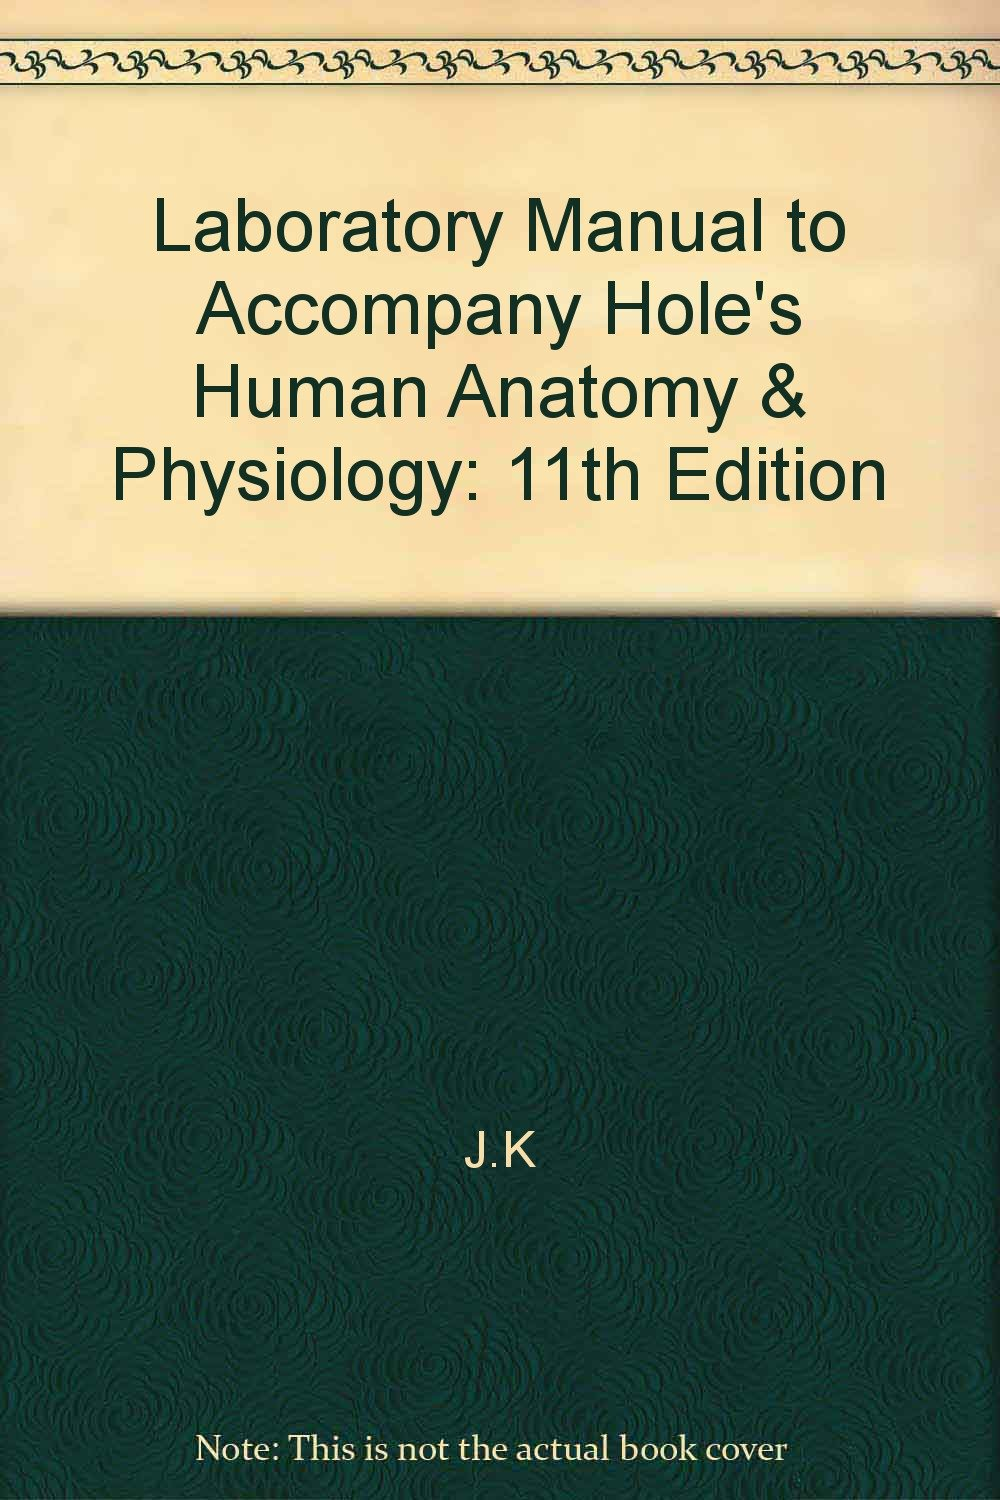 Hole\'s Human Anatomy & Physiology 11th edition: J.K: 9780073305554 ...